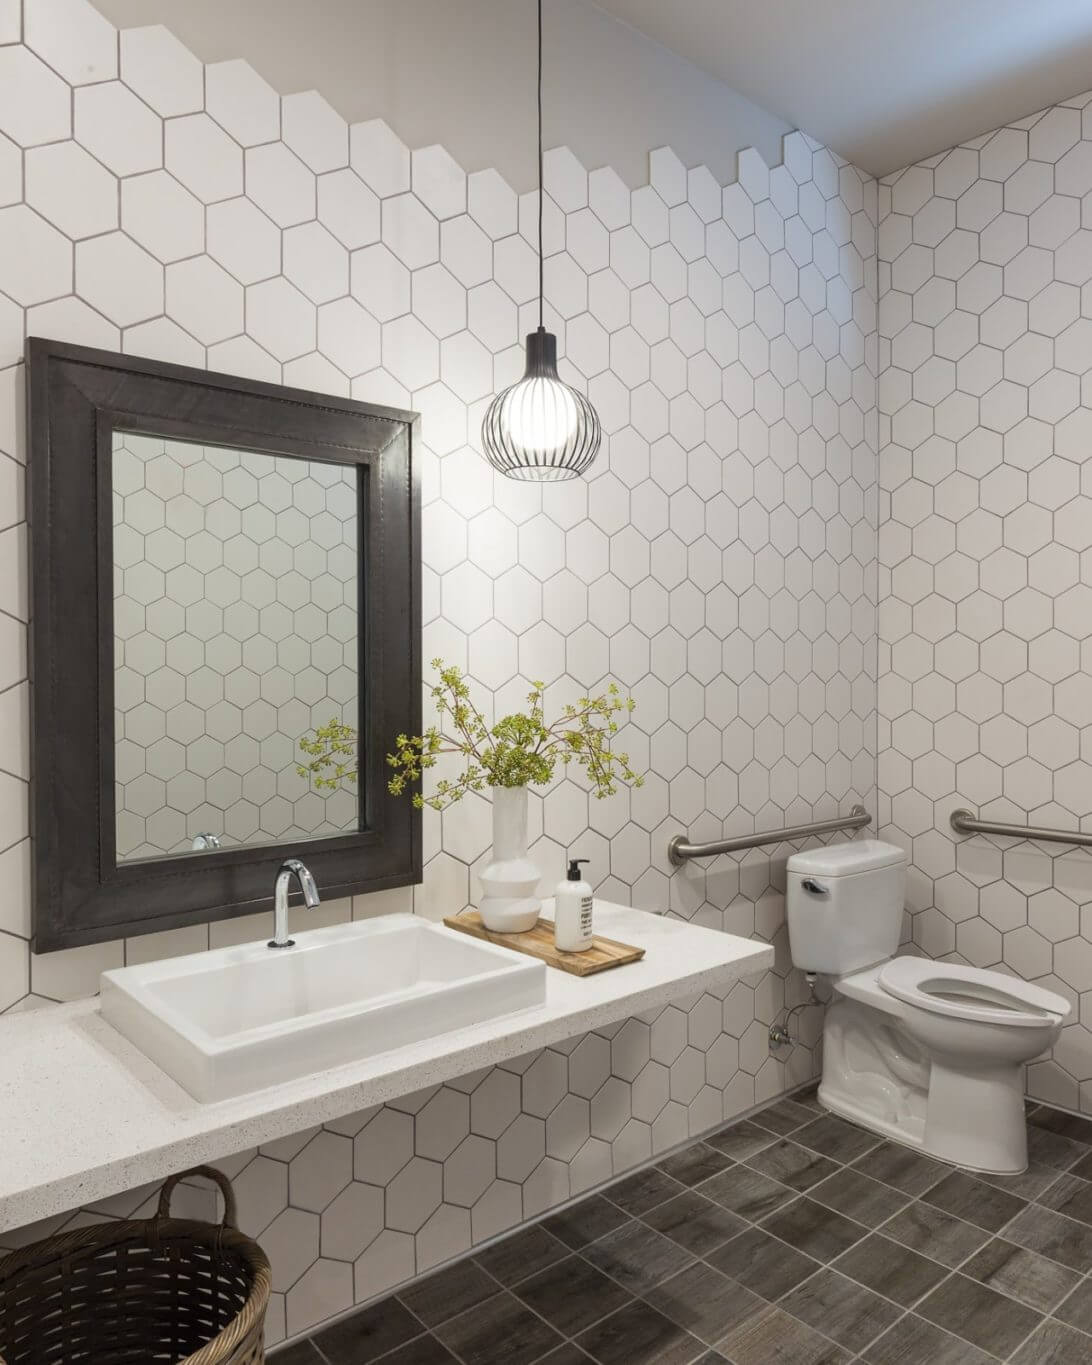 Bathroom with hexagon tile walls